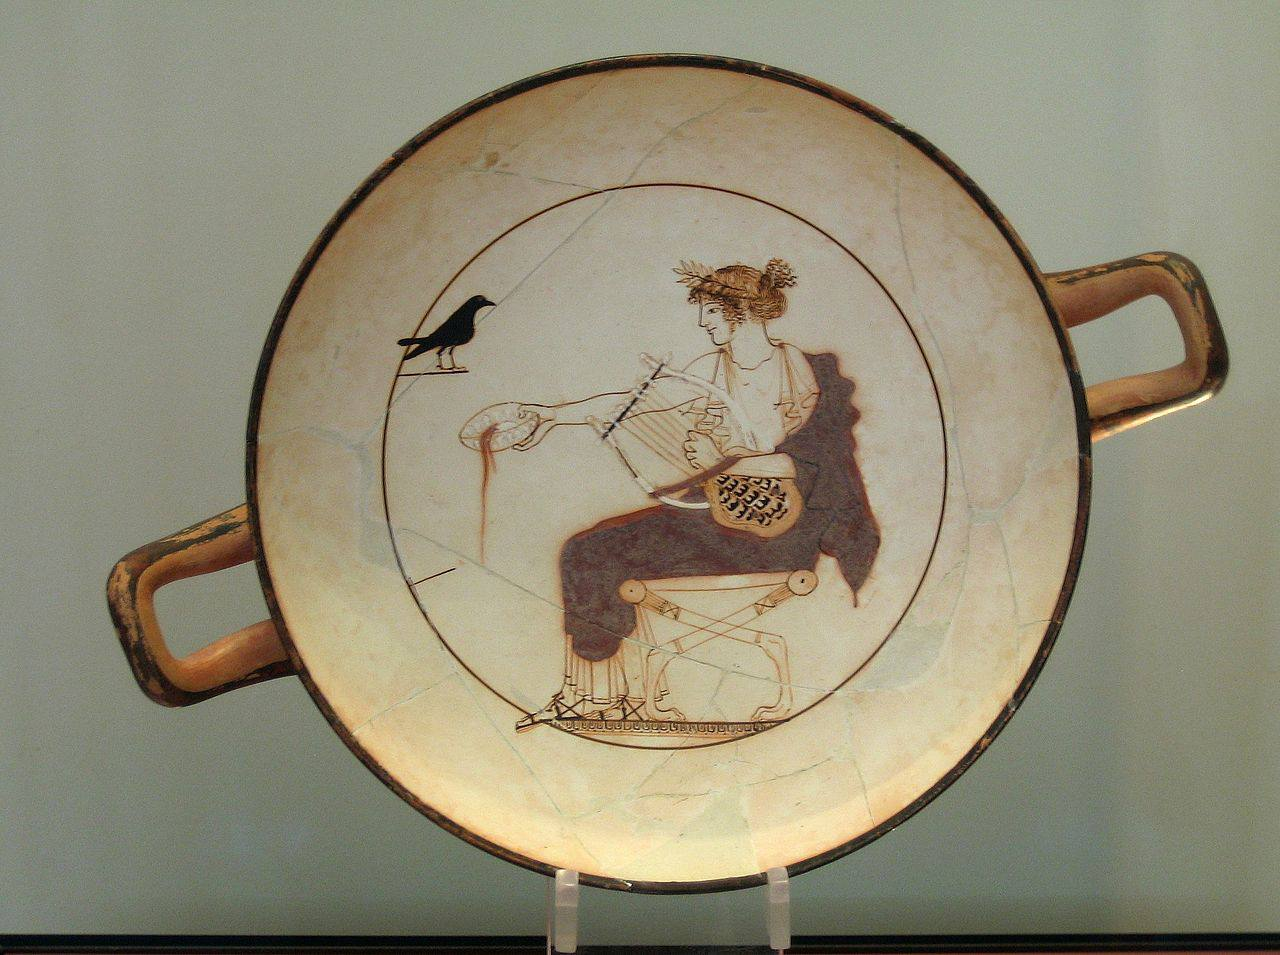 Painting of Apollo with sitting with lyre next to raven on a plate.